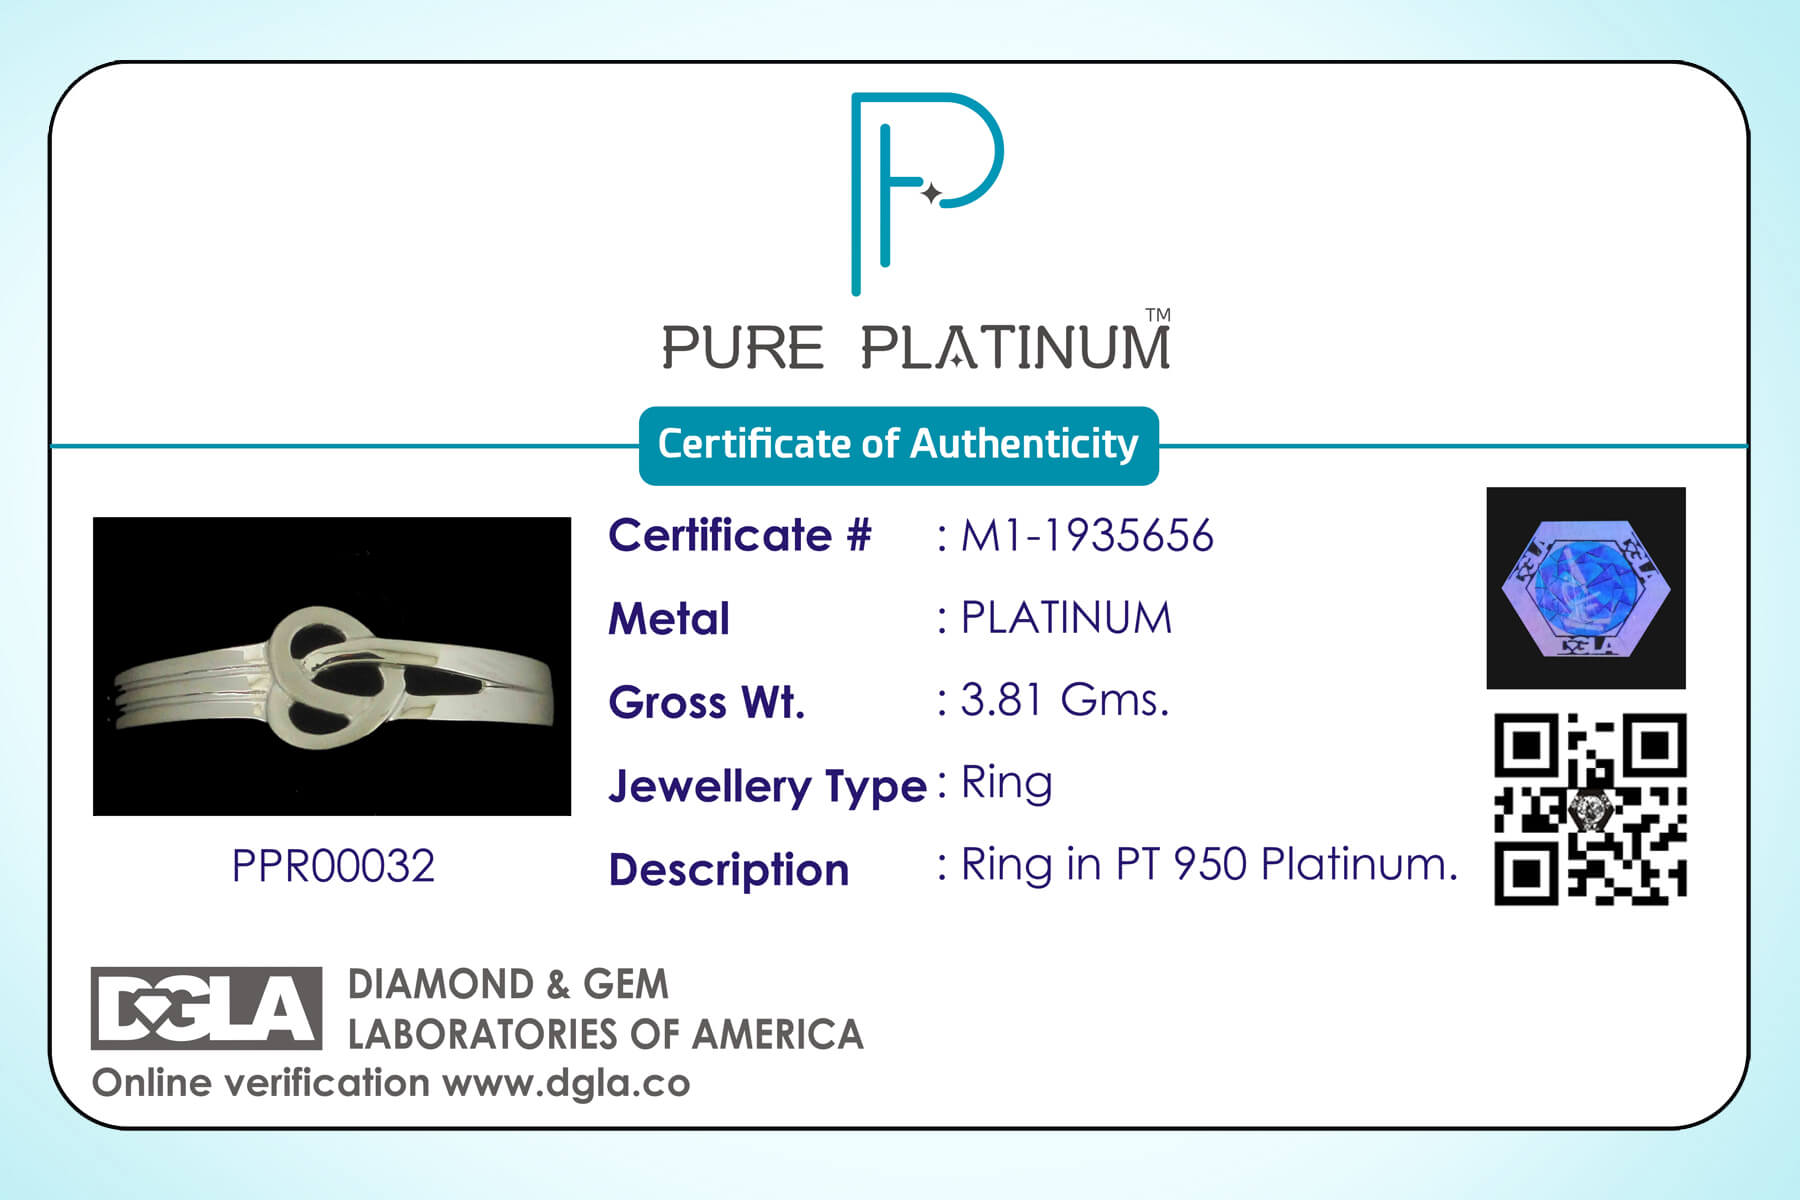 Diamond & Gem Laboratories of America